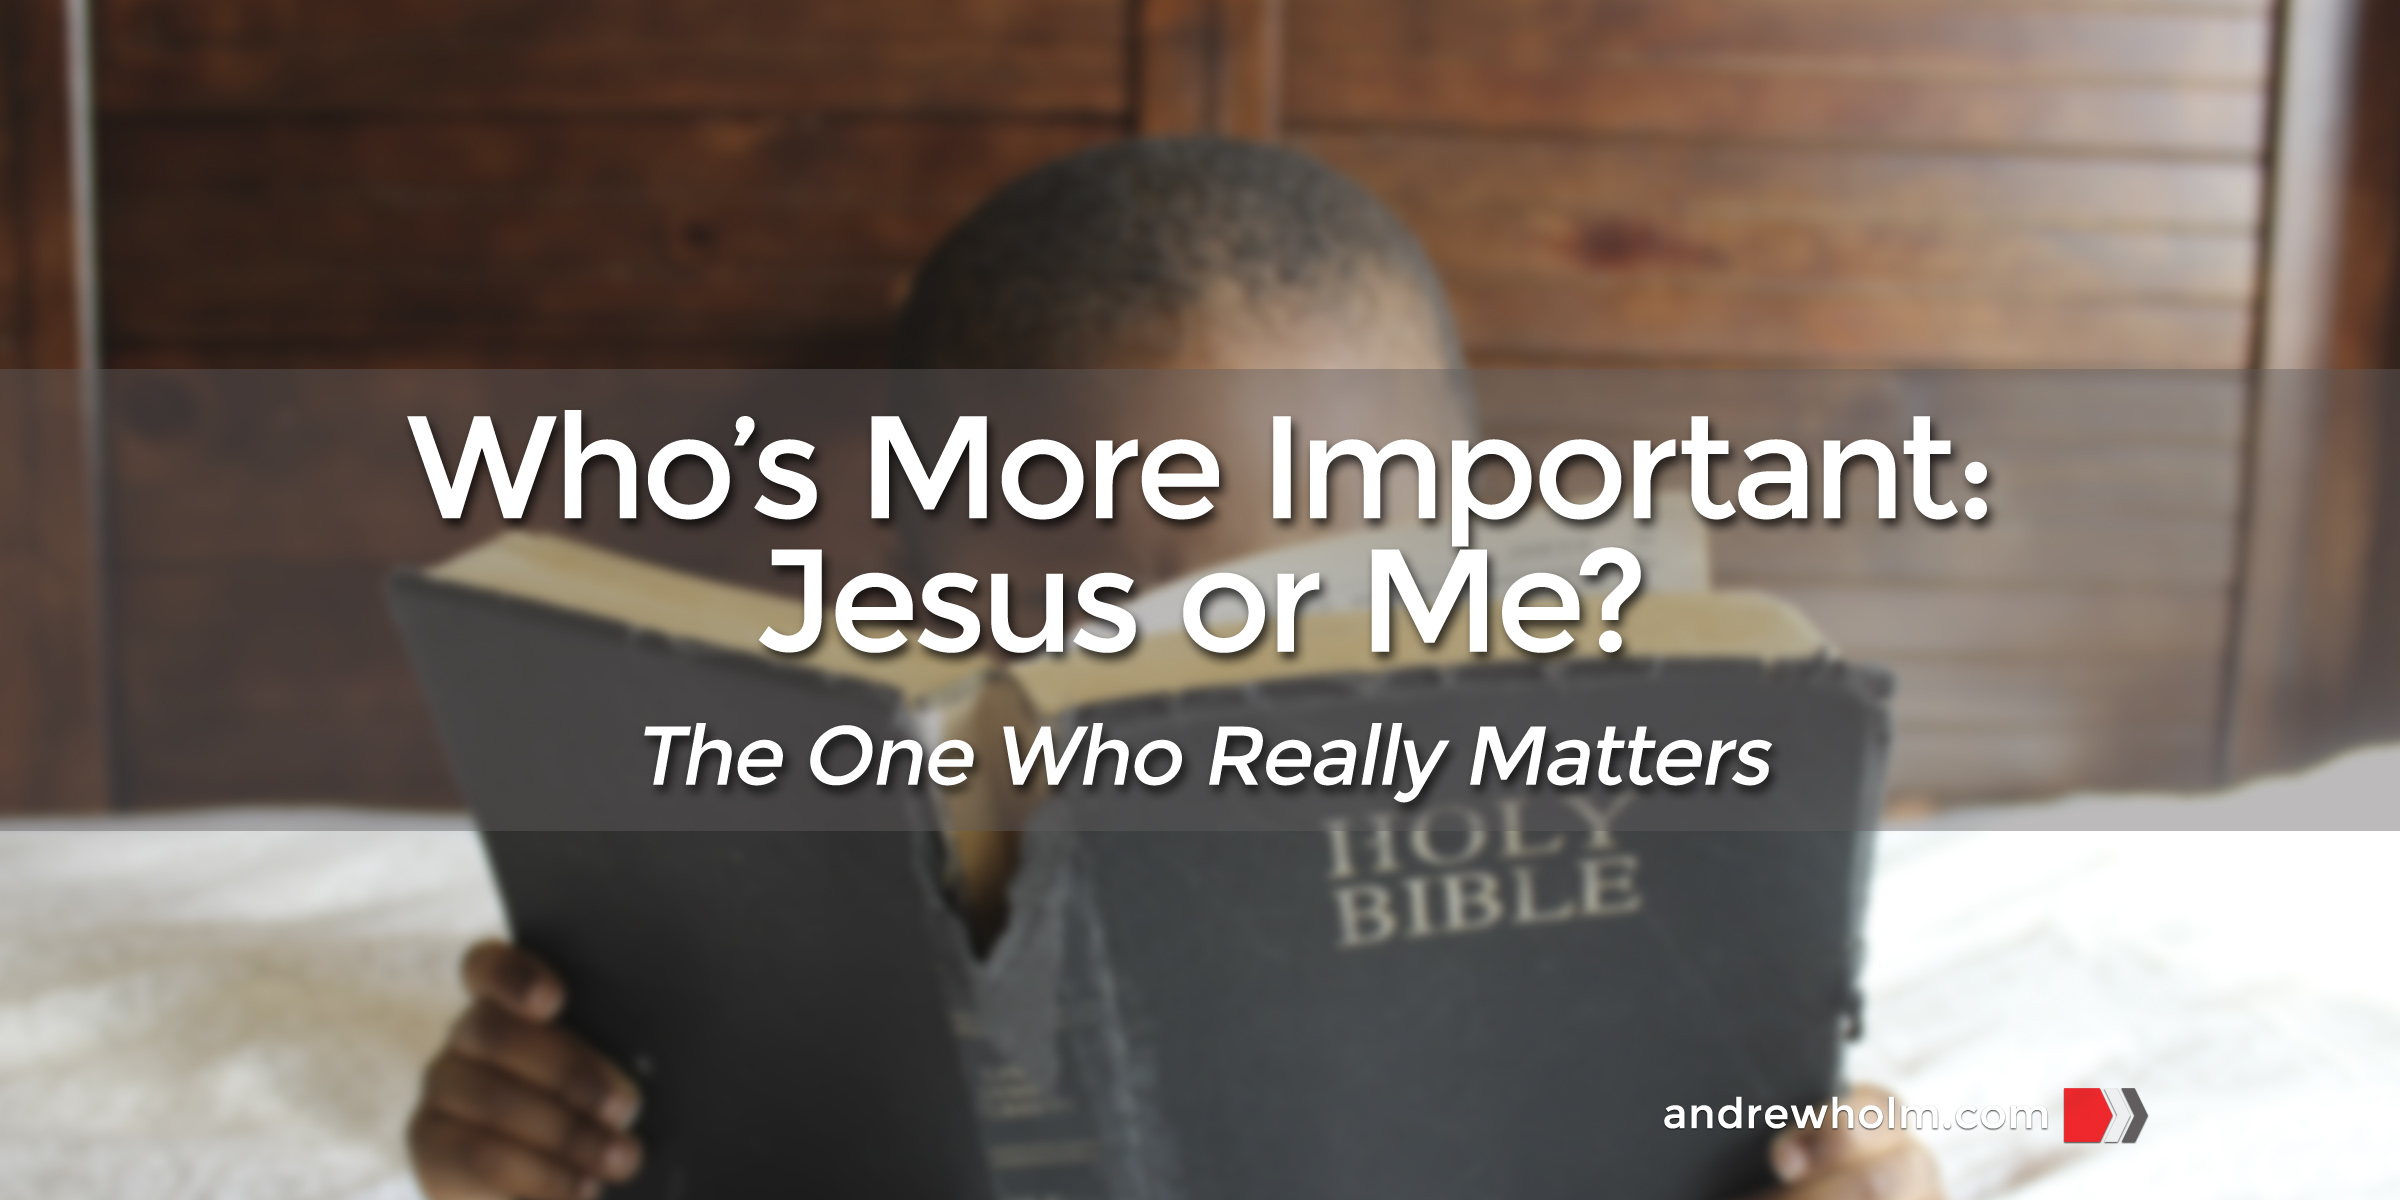 Who's More Important: Jesus or Me?